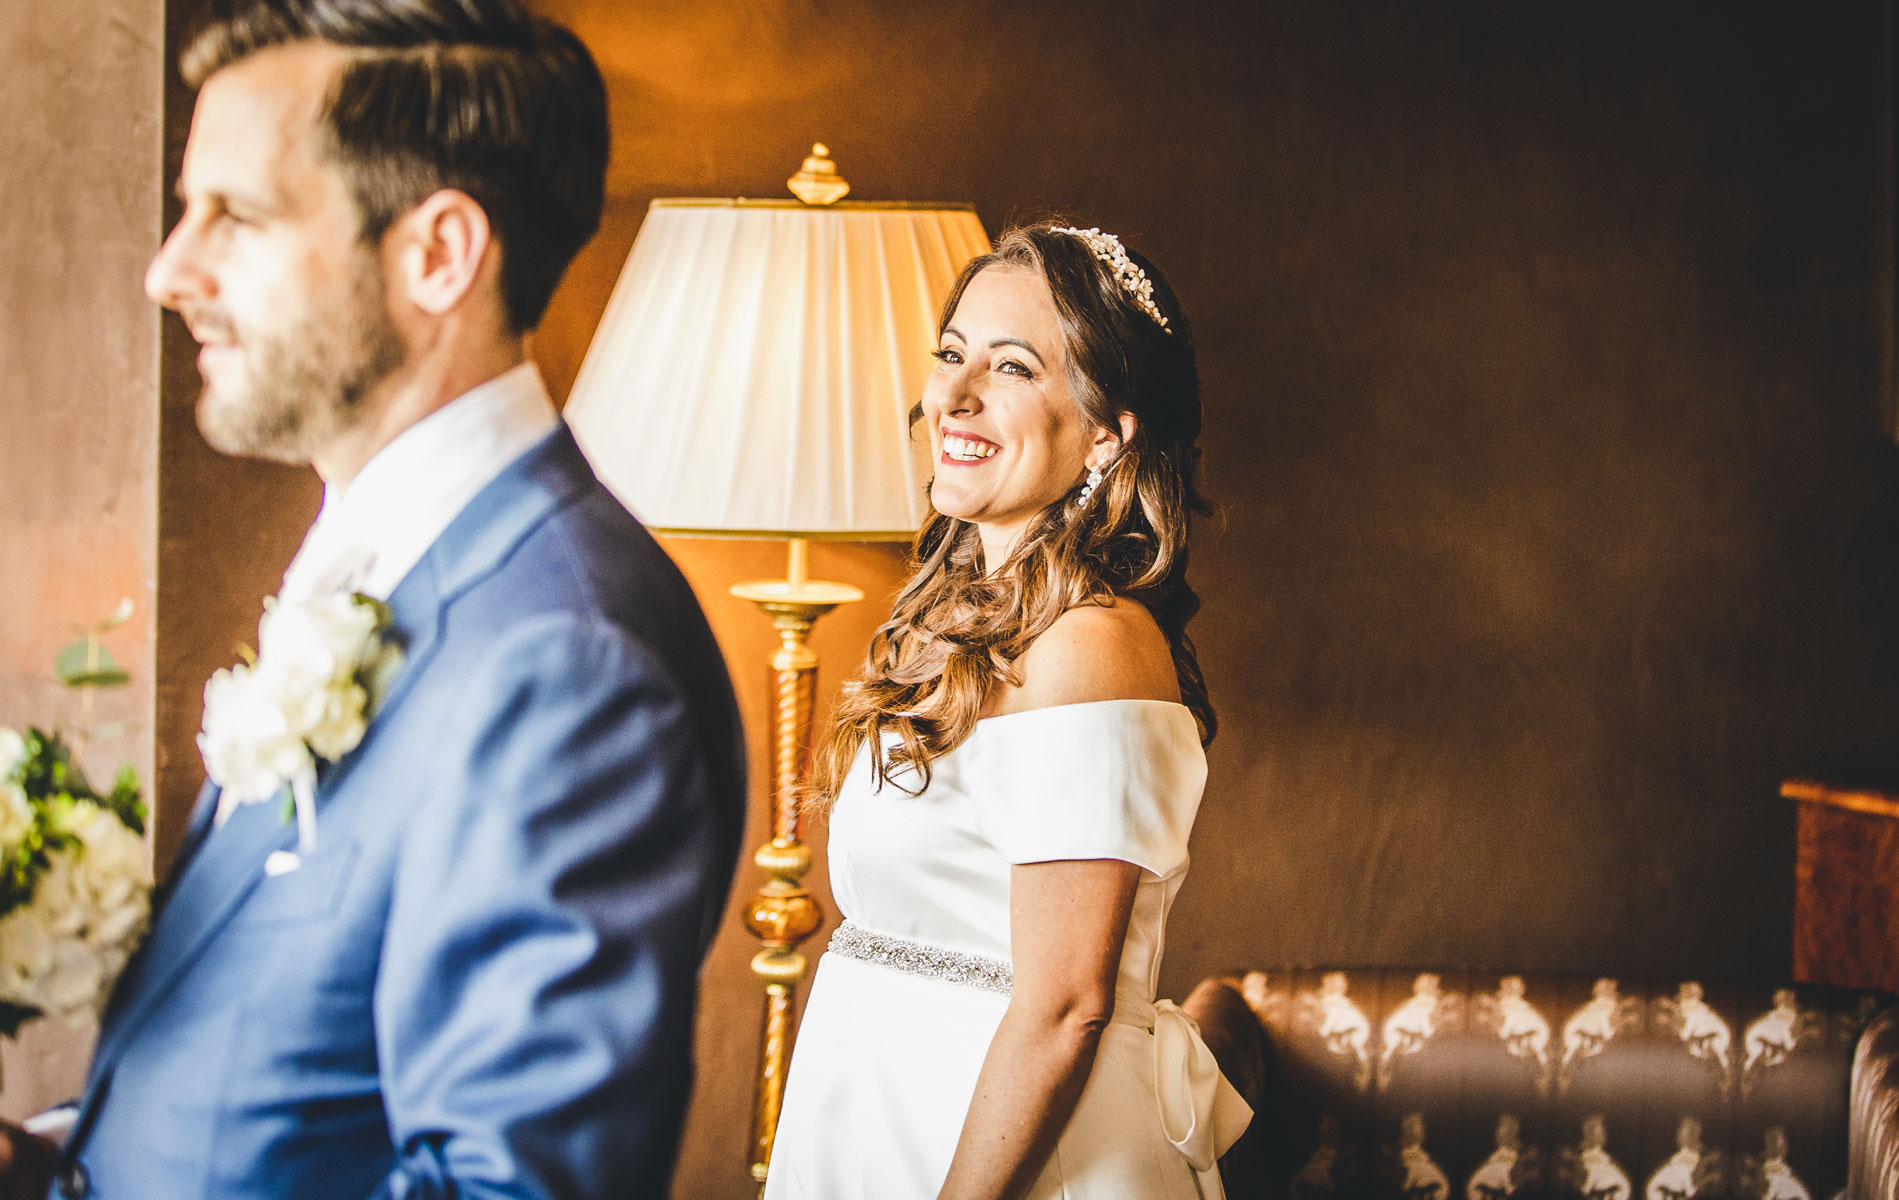 Civil Wedding Photographer of Venice | the bride waits for her groom to turn around